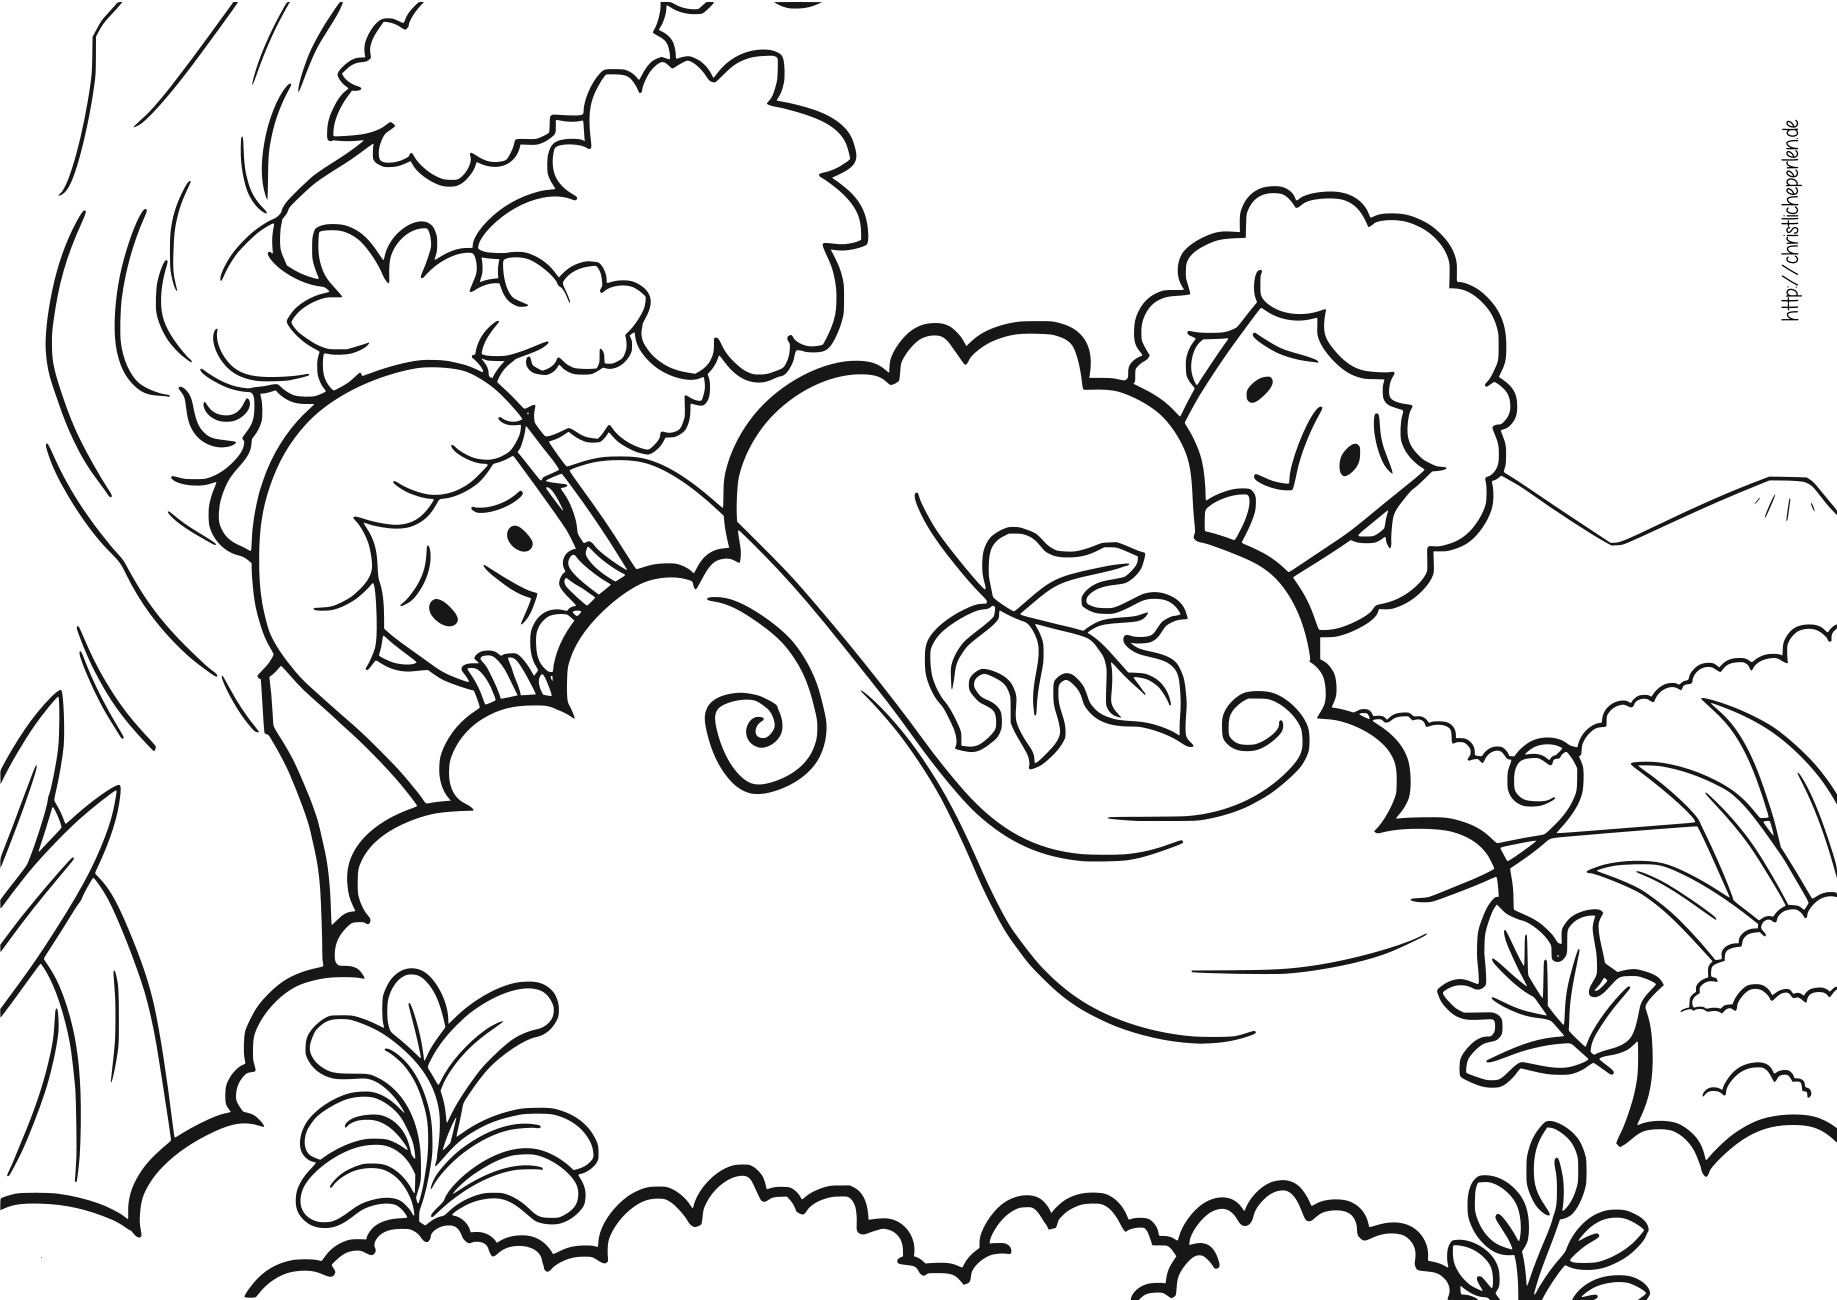 adam and eve coloring pages Collection-Adam Eve Bible Coloring Pages 1-j